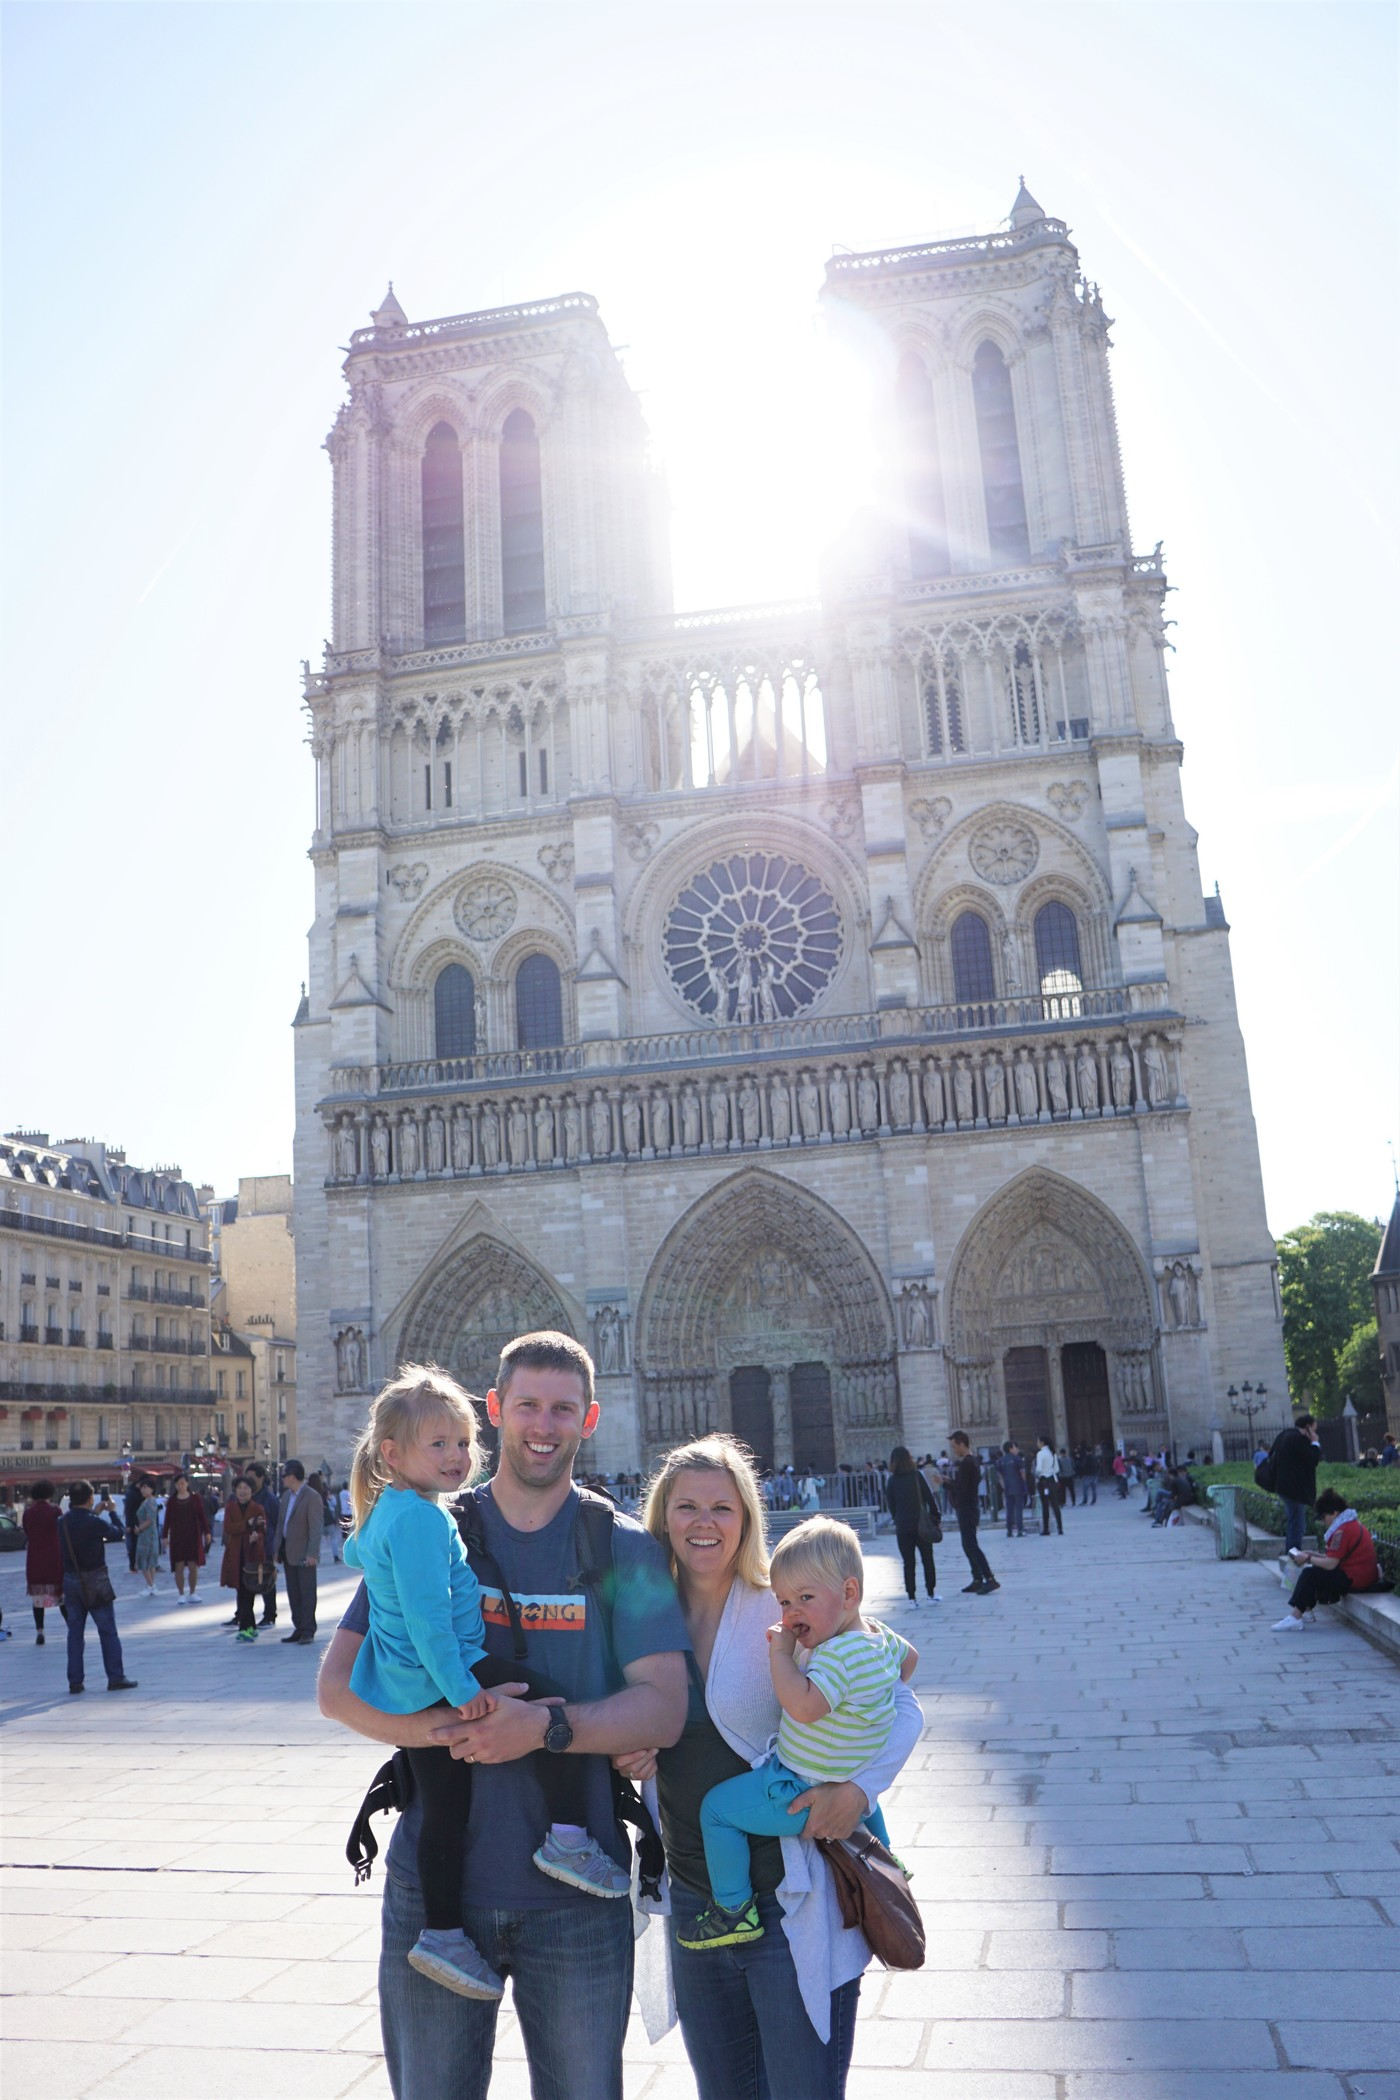 Notre DamE is a MUST for families in Paris